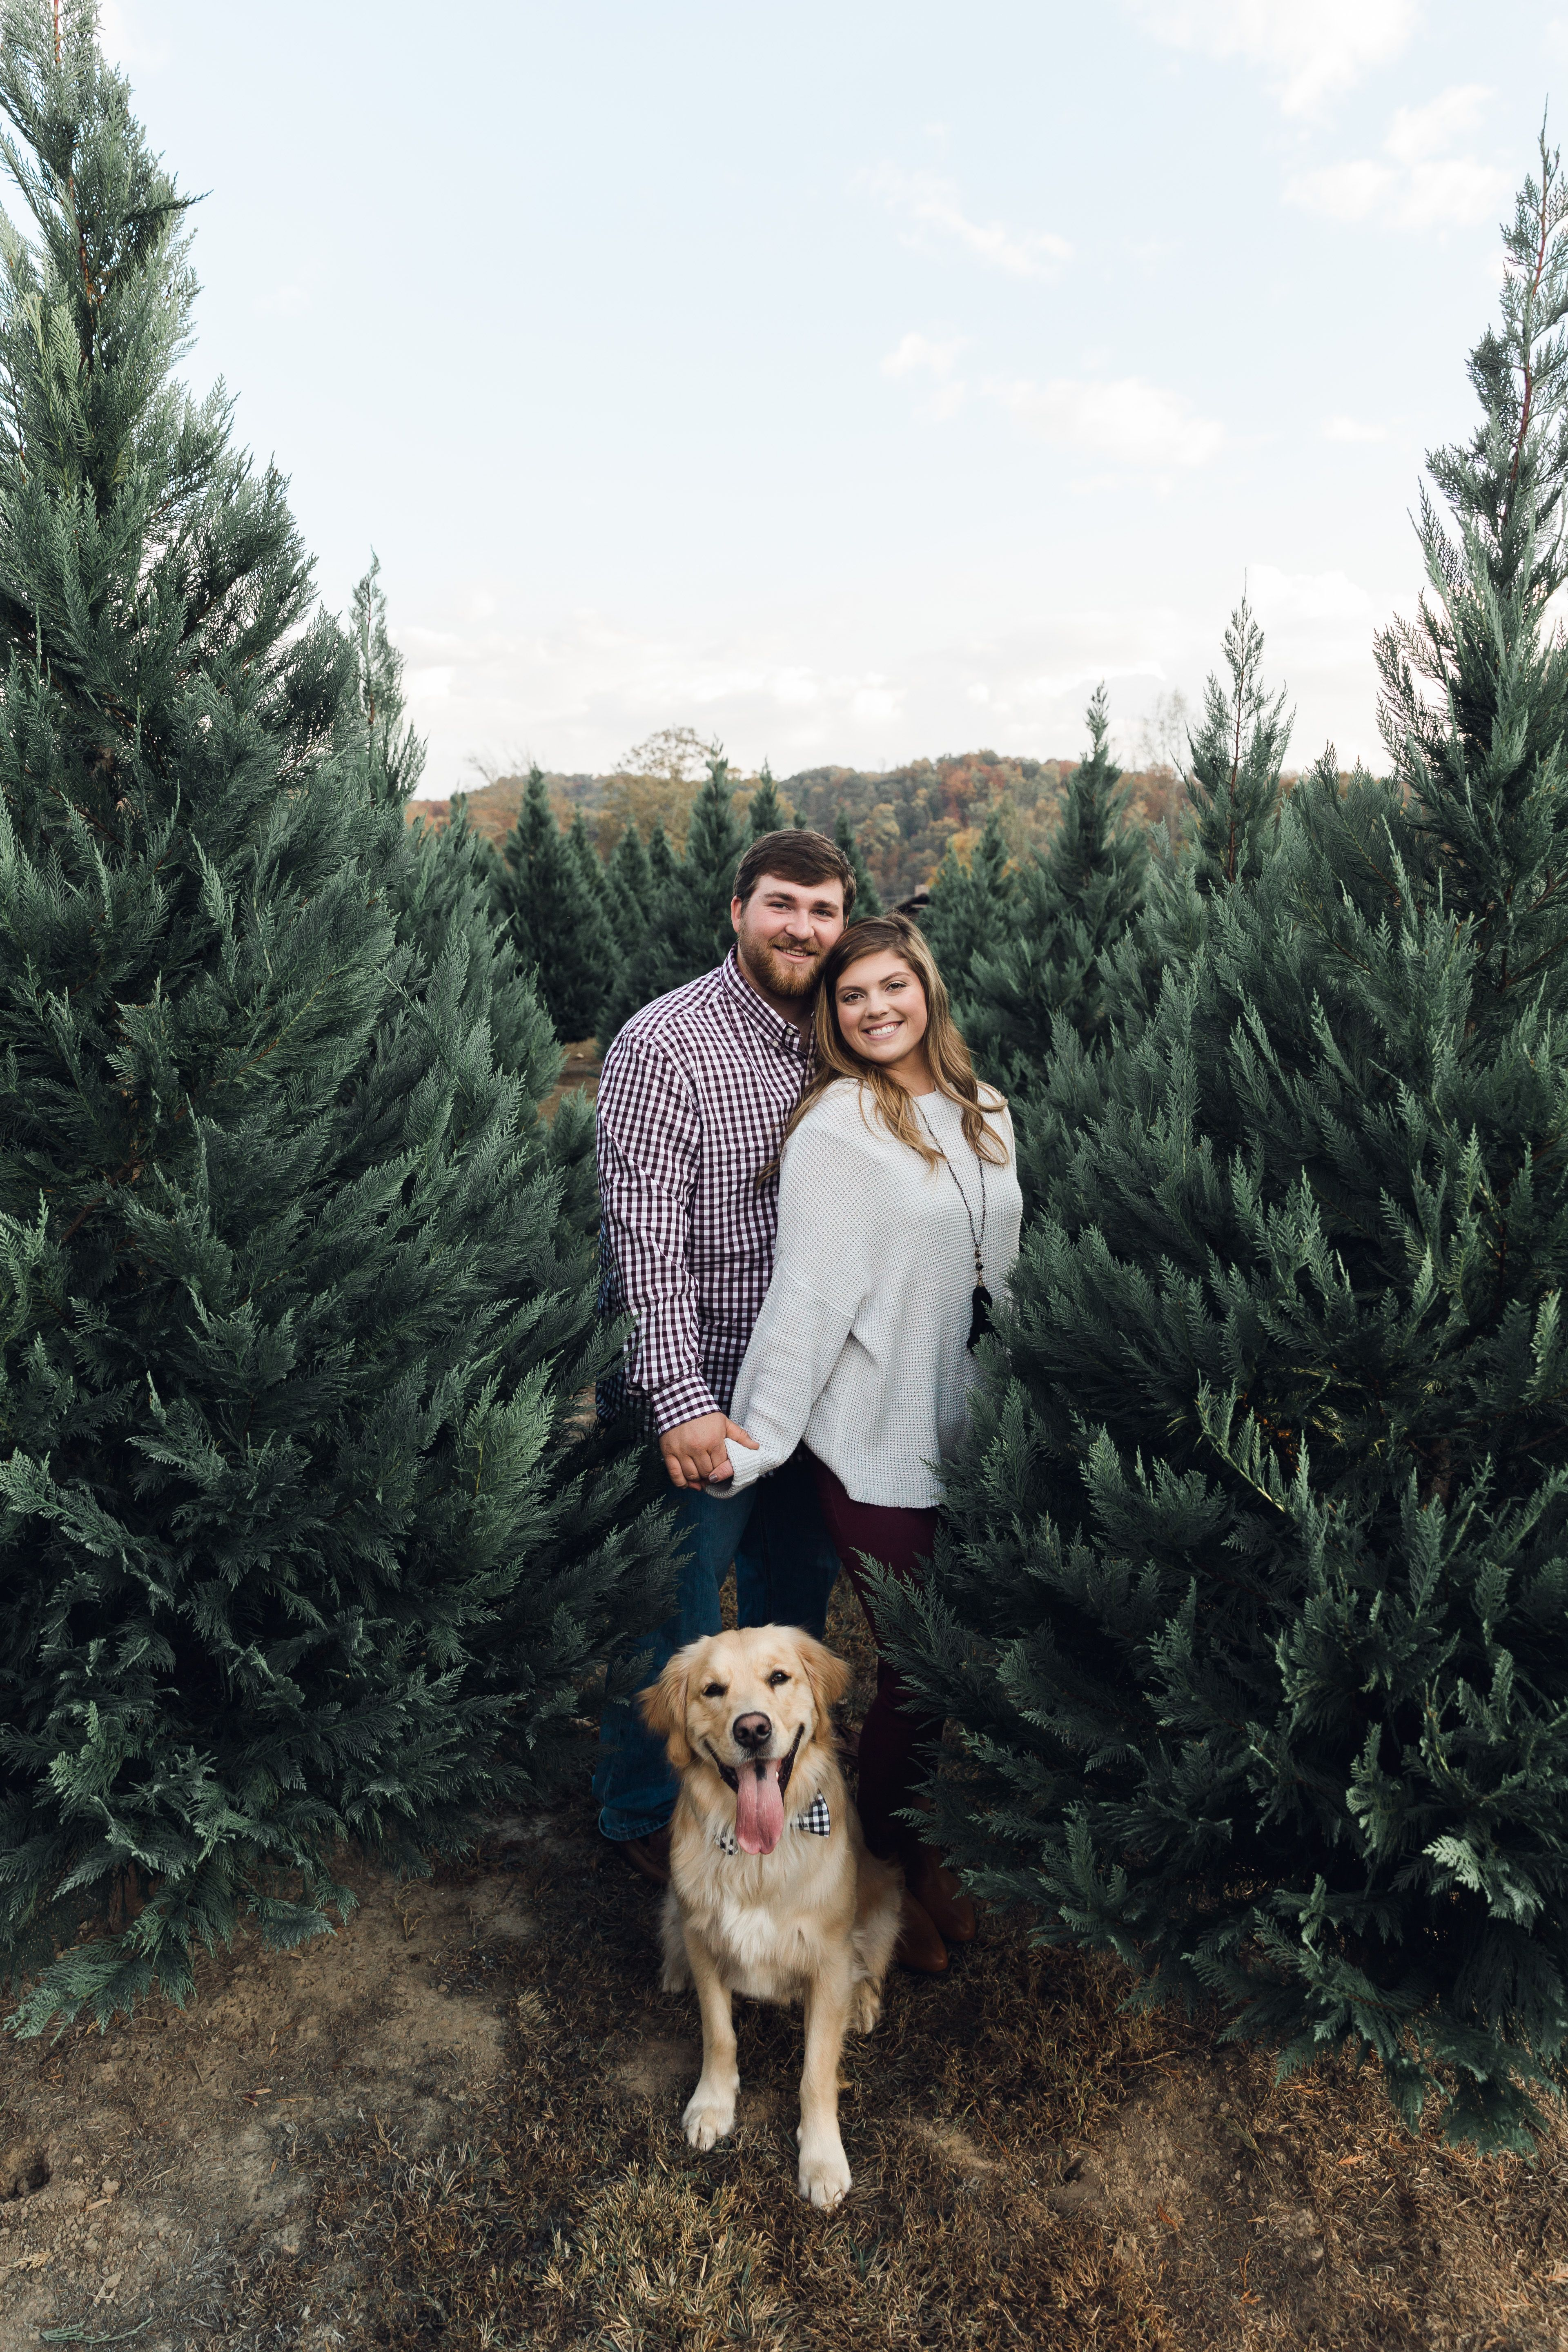 Christmas Tree Farm Engagement Session Christmastreefarm Engagementpictures Christmas Tree Farm Photos Christmas Couple Pictures Christmas Tree Photography